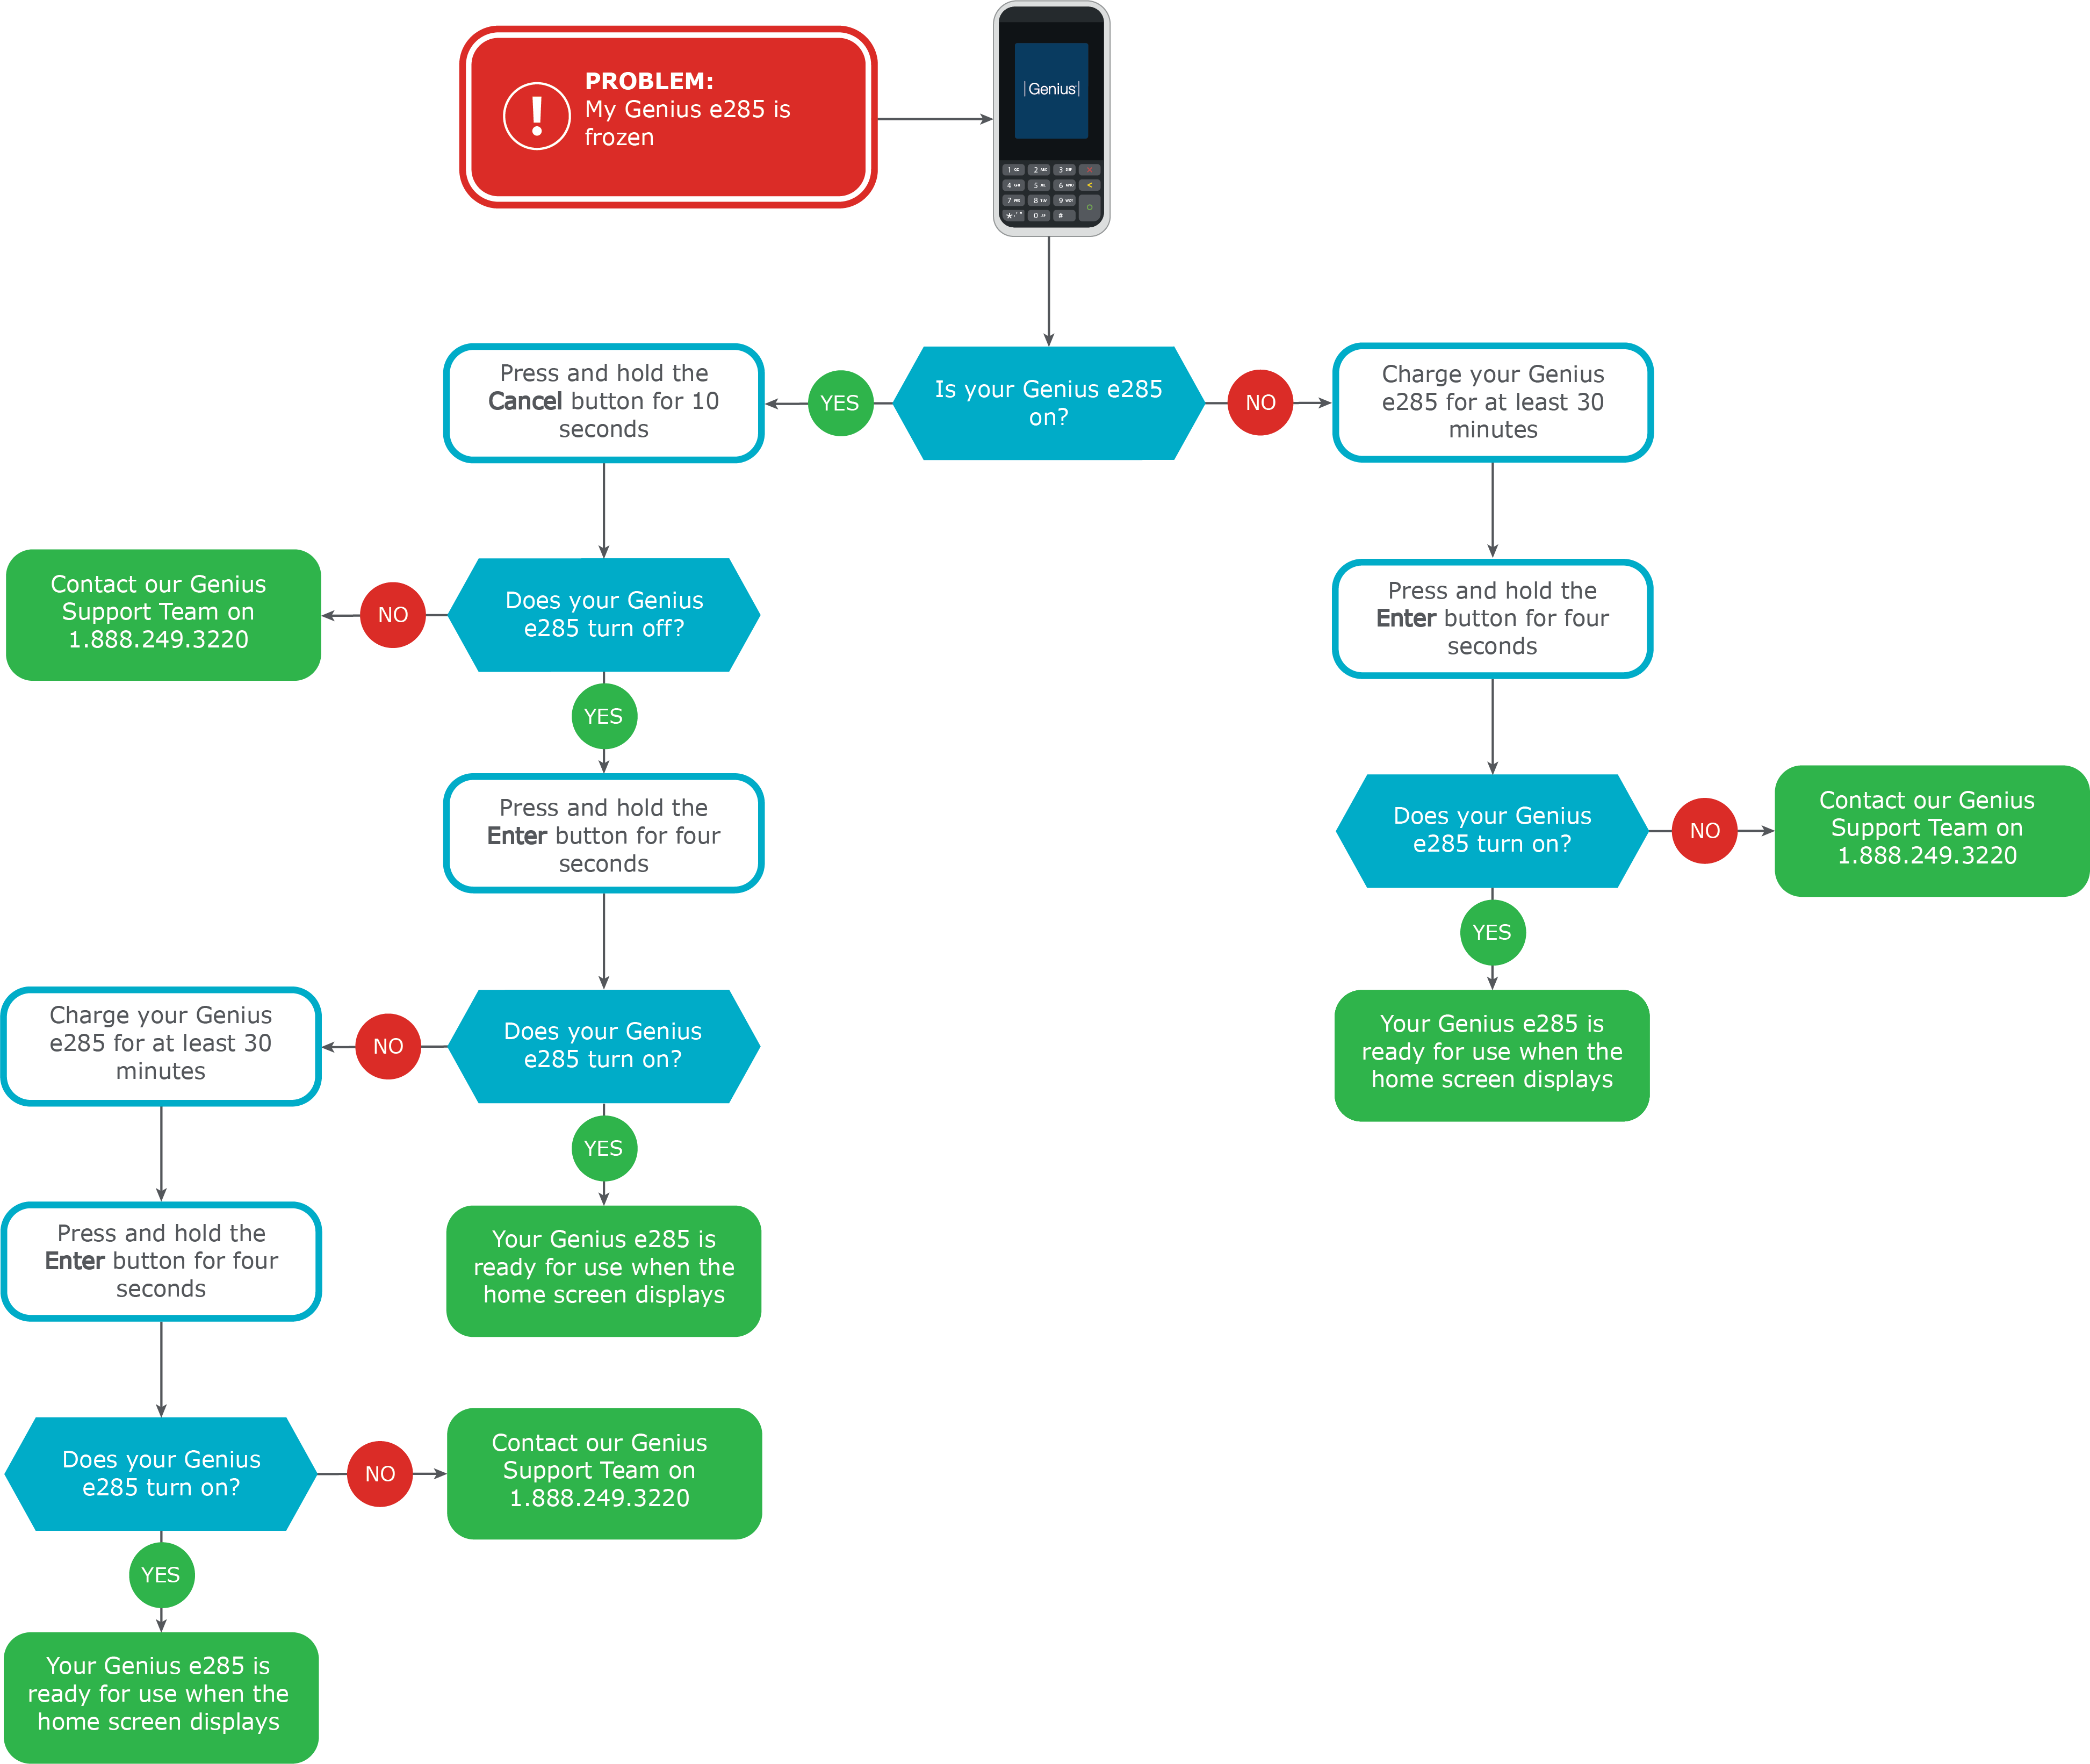 Flowchart with steps to fix a Genius device if it is frozen.